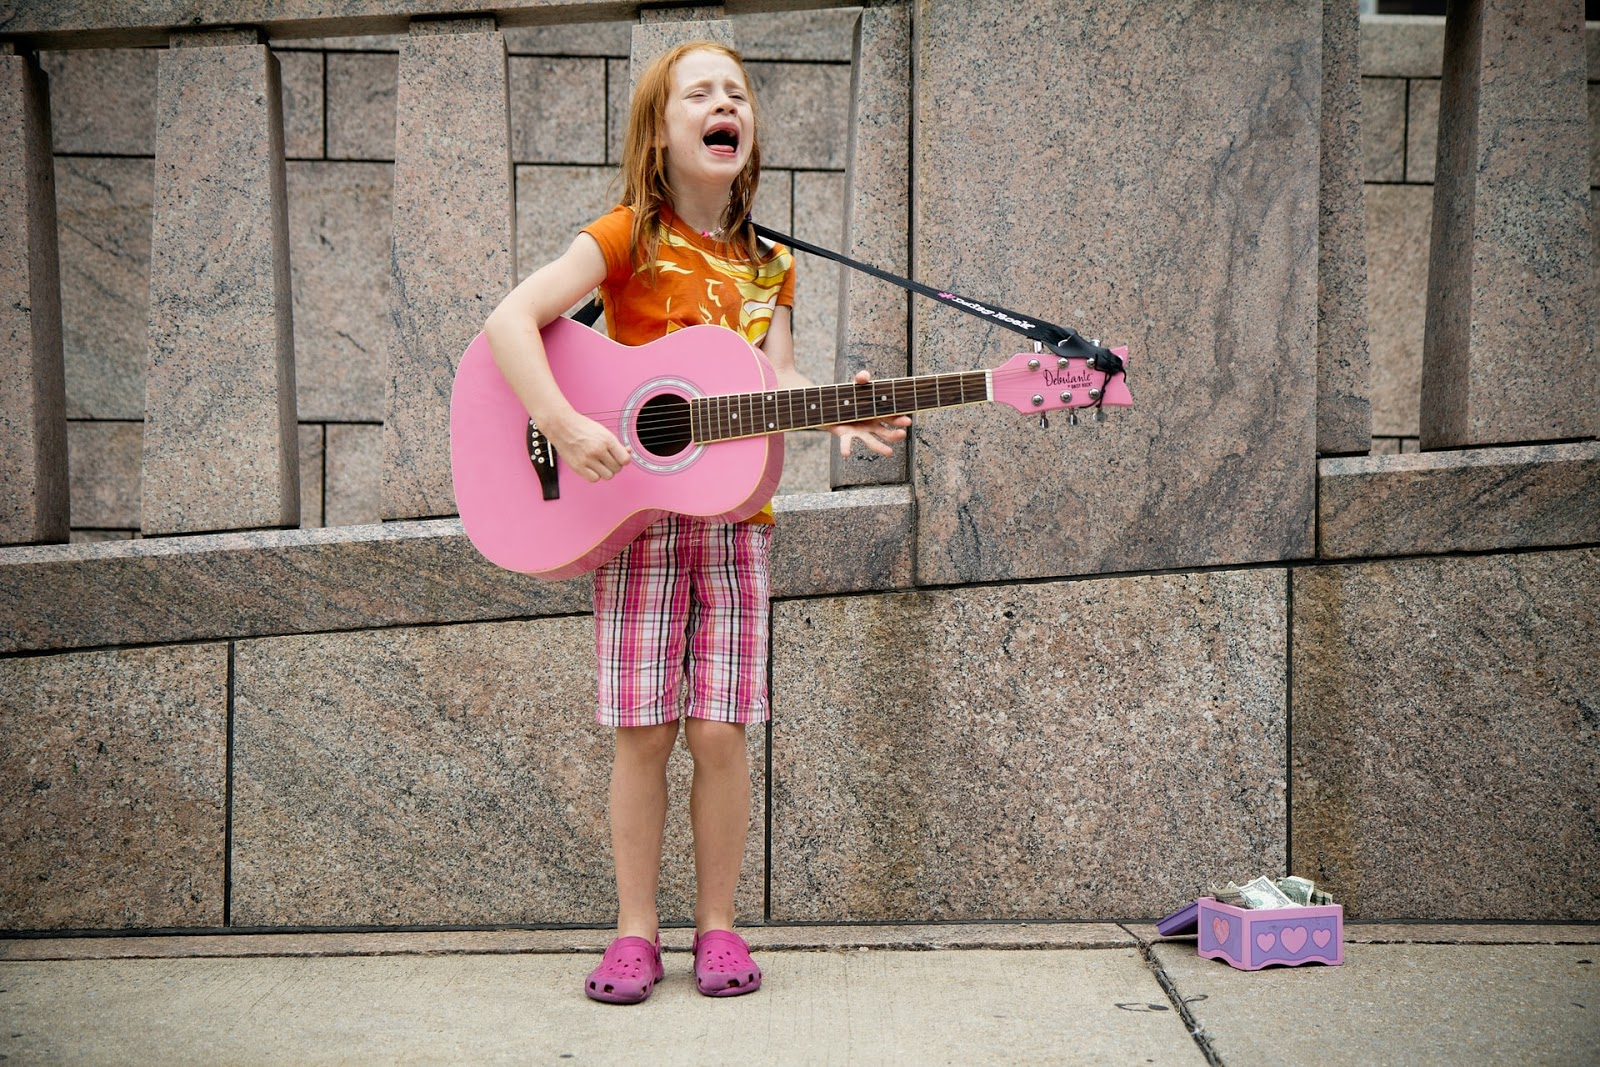 girl with a pink guitar singing after getting through a creative block